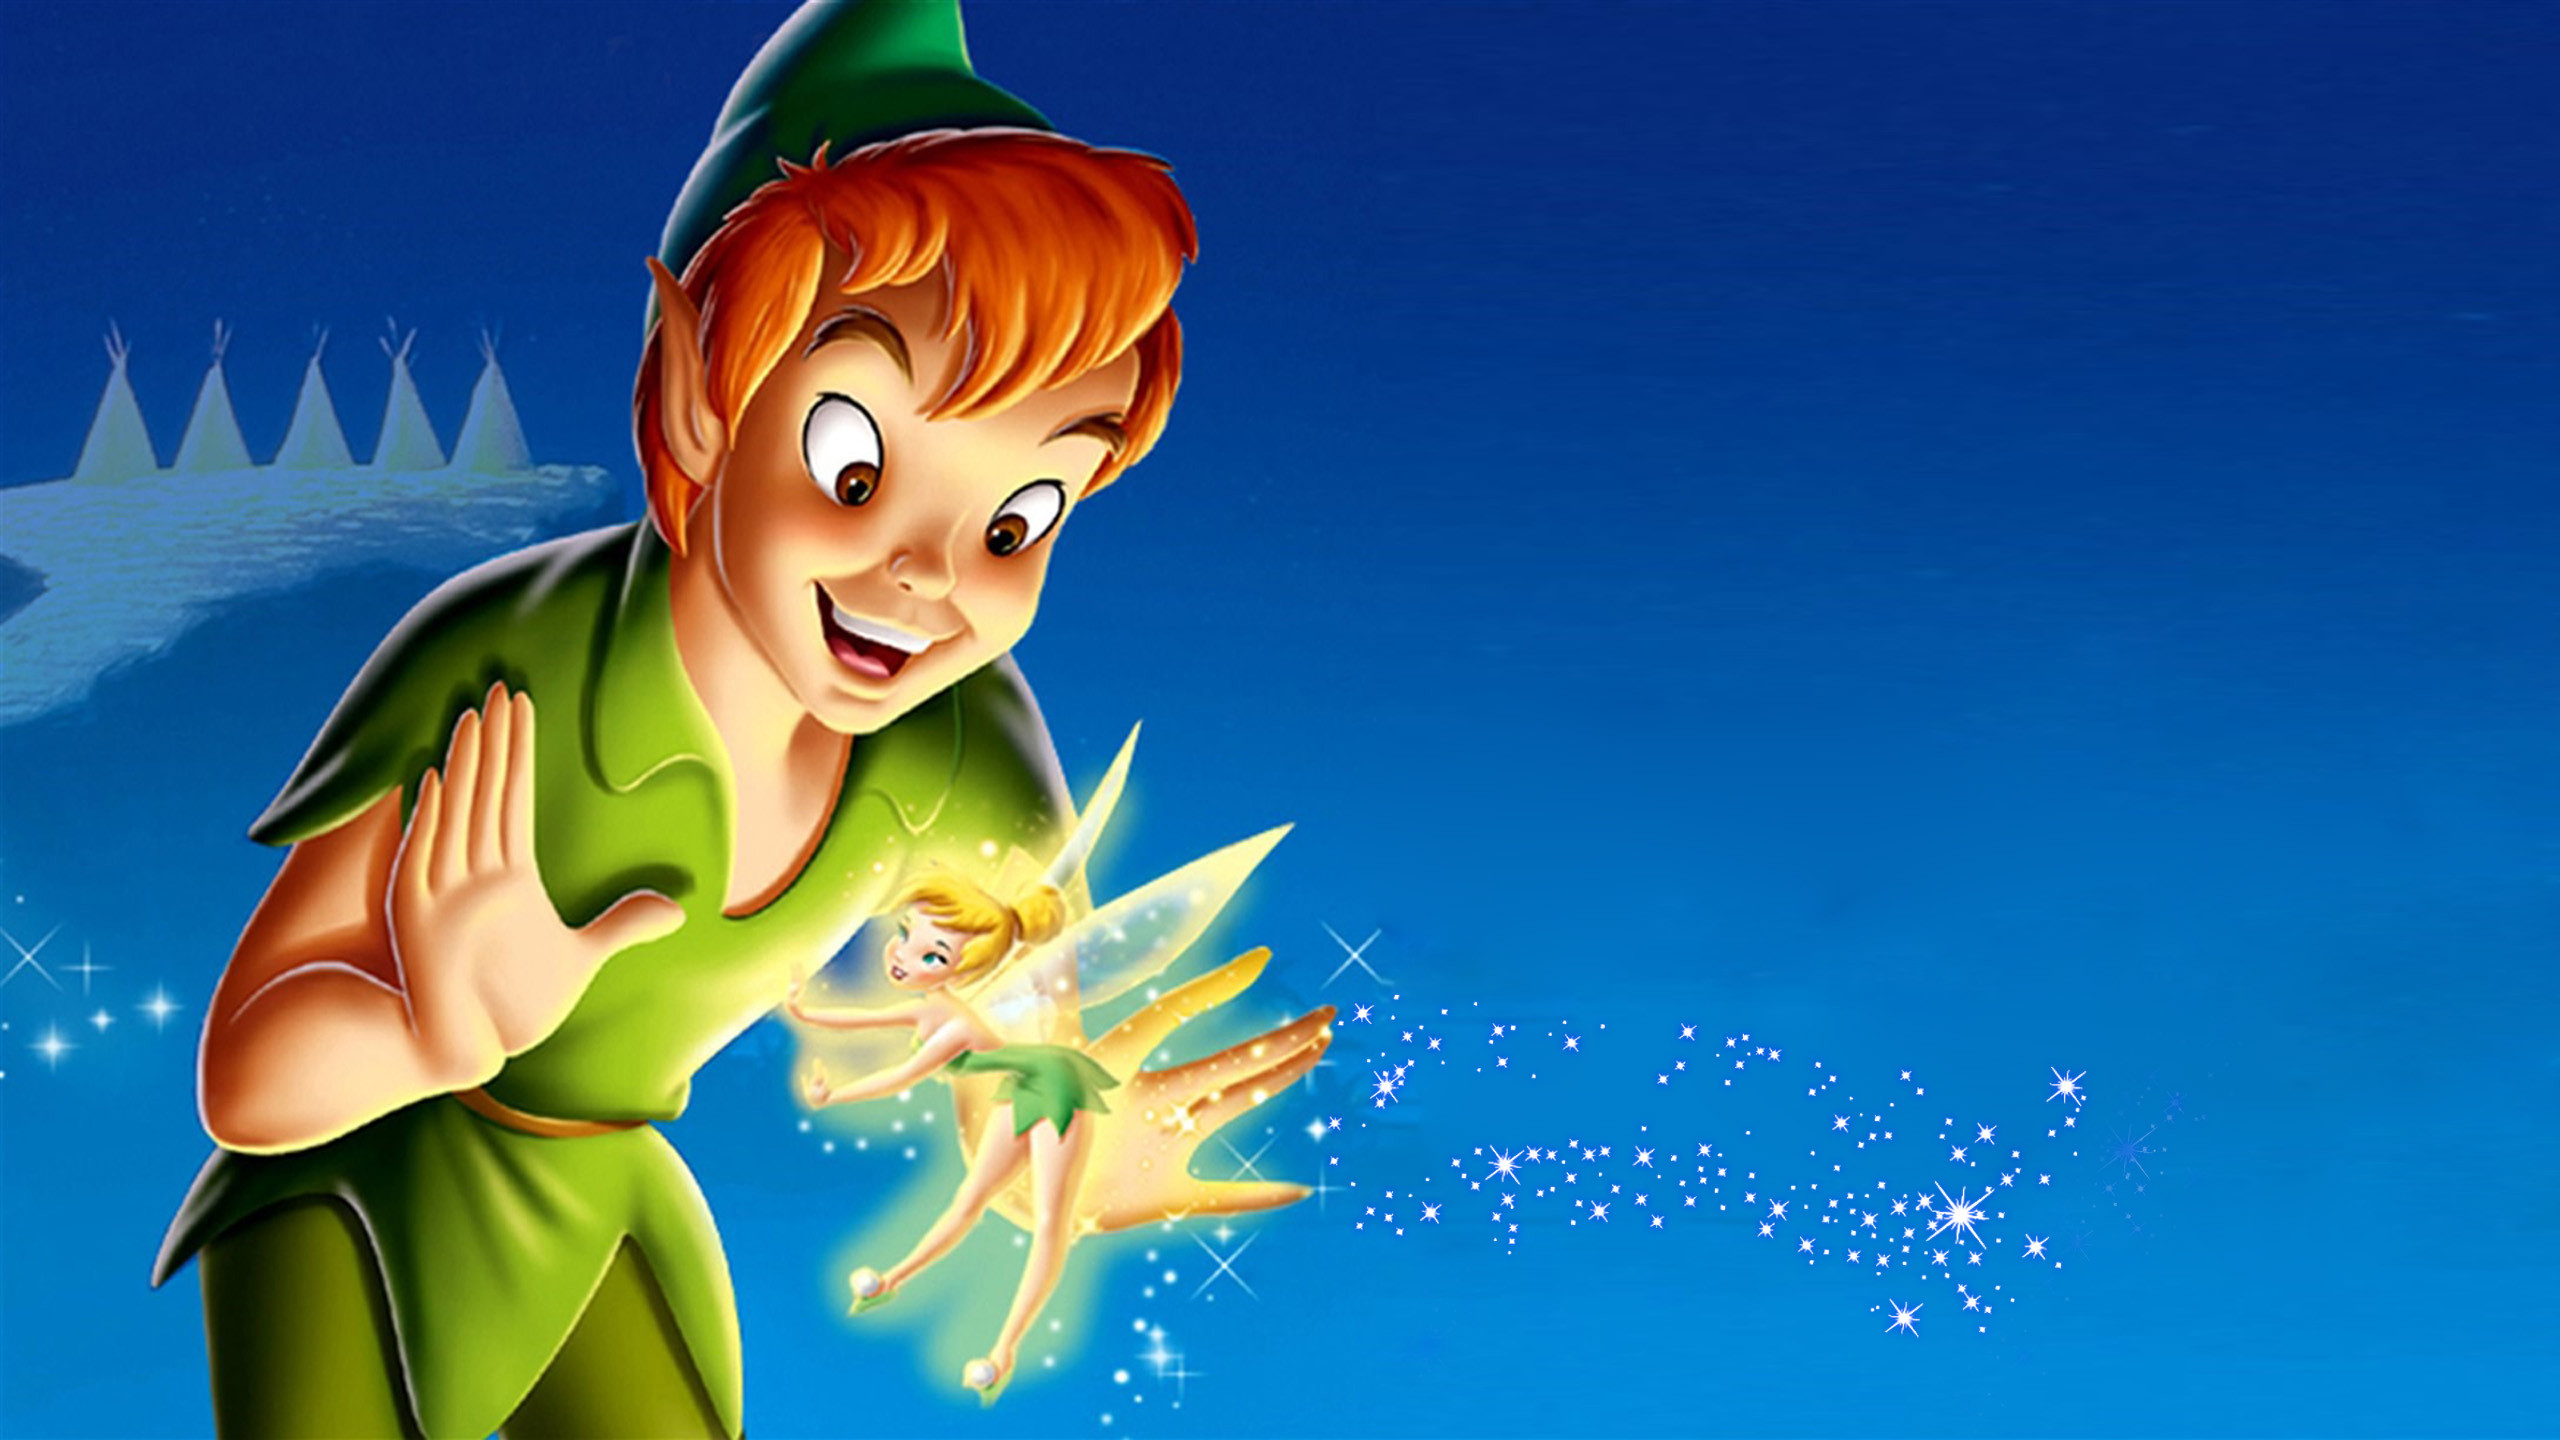 Res: 2560x1440, Peter Pan And Tinkerbell Desktop Hd Wallpapers For Mobile Phones And  Computer 2560×1440